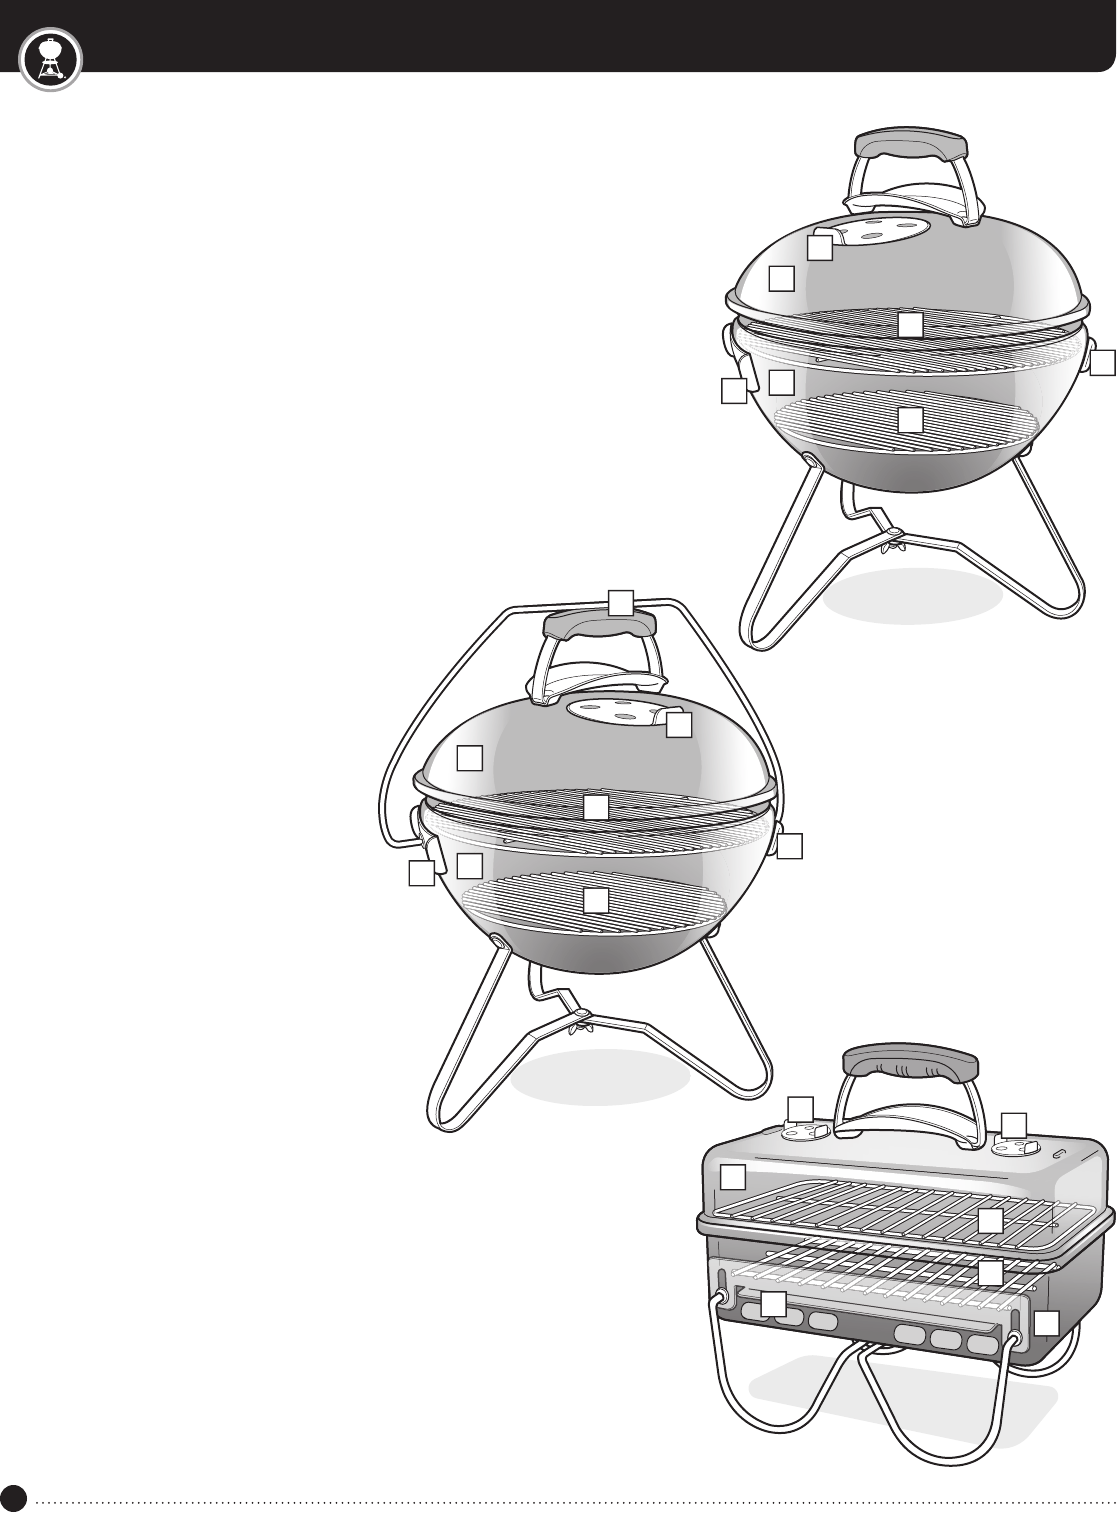 Manual Weber GO ANYWHERE CHARCOAL GRILL (page 8 of 8